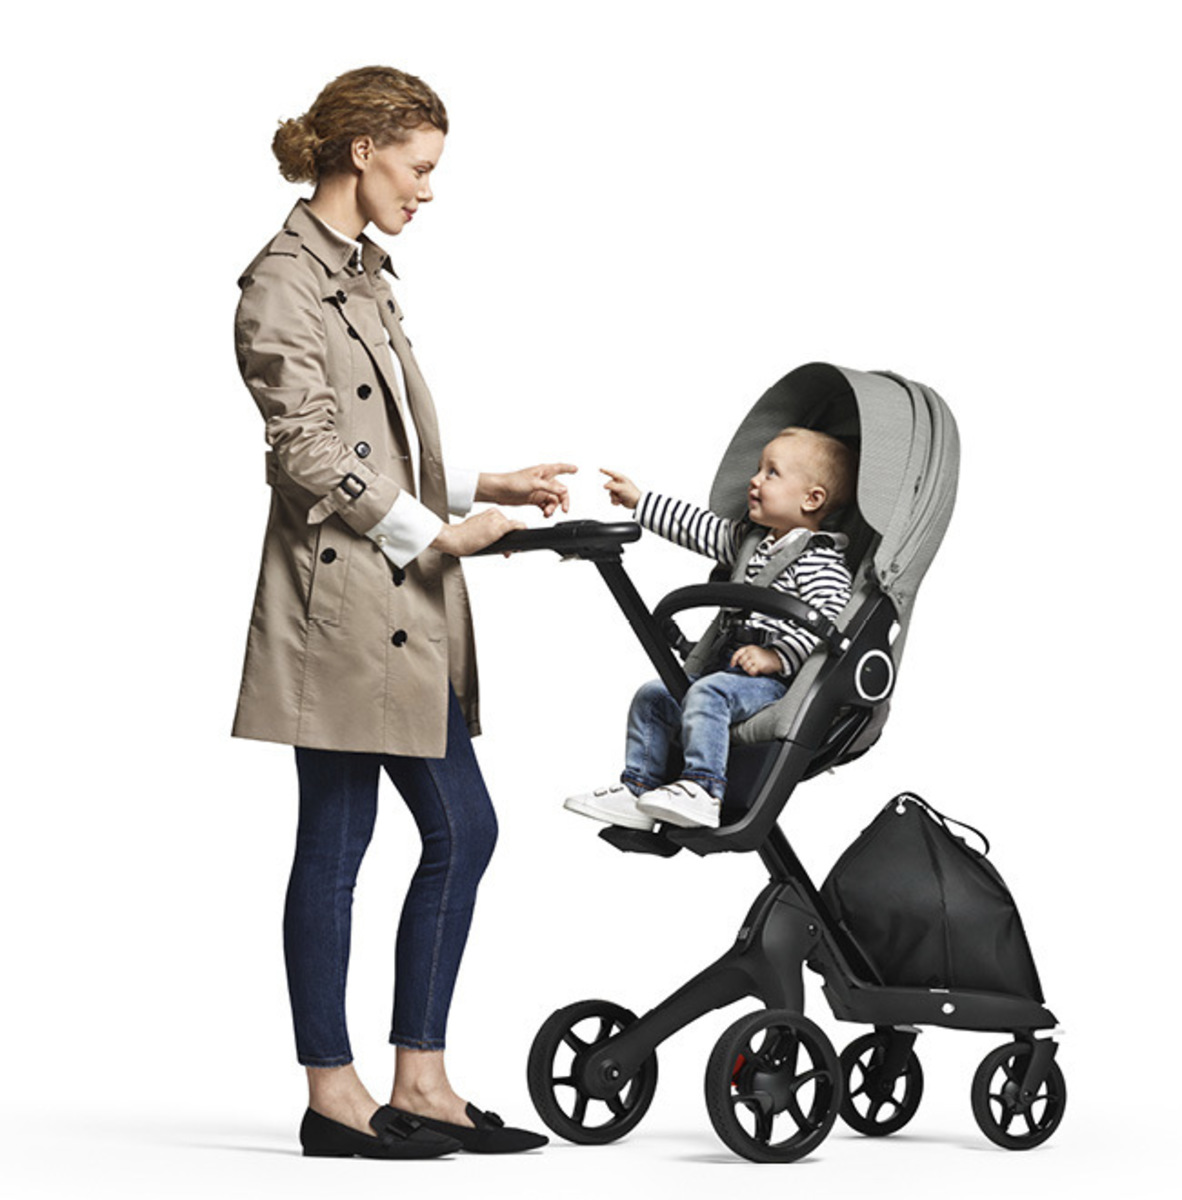 Xplory is loved by parent and child - See Xplory in Athleisure Marina Blue